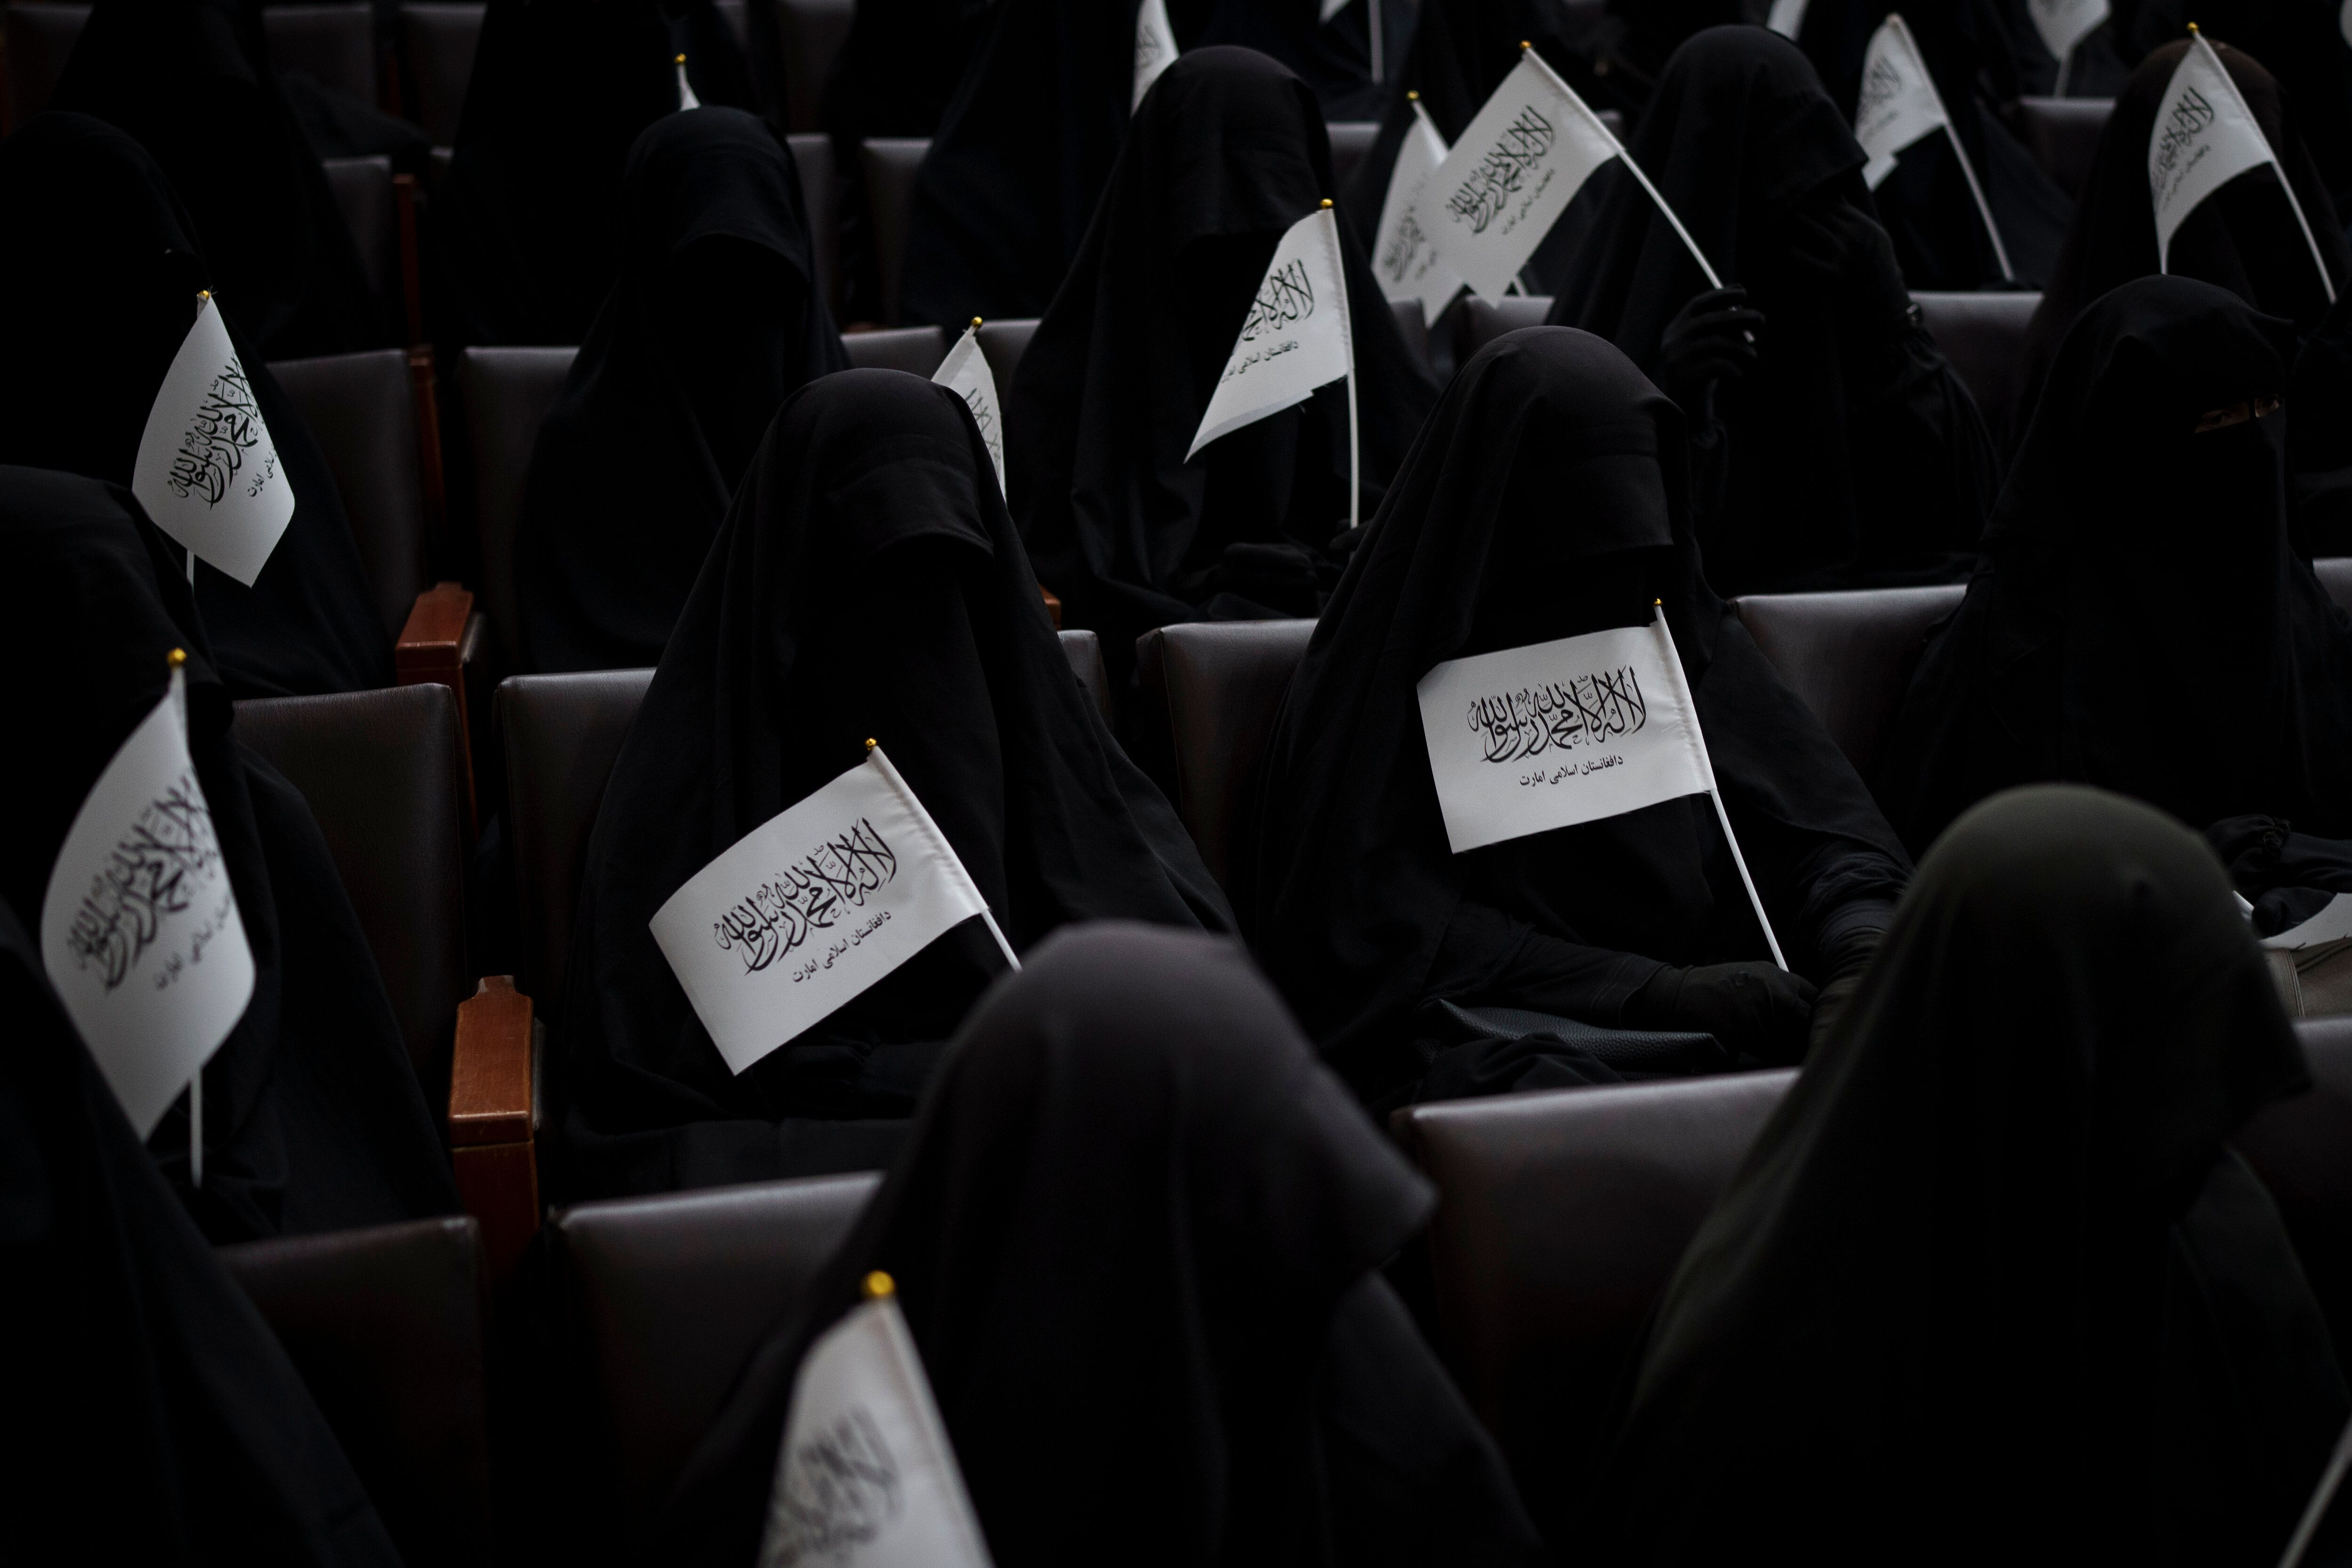 Women wave Taliban flags as they sit inside an auditorium at Kabul University's education center during a demonstration in su